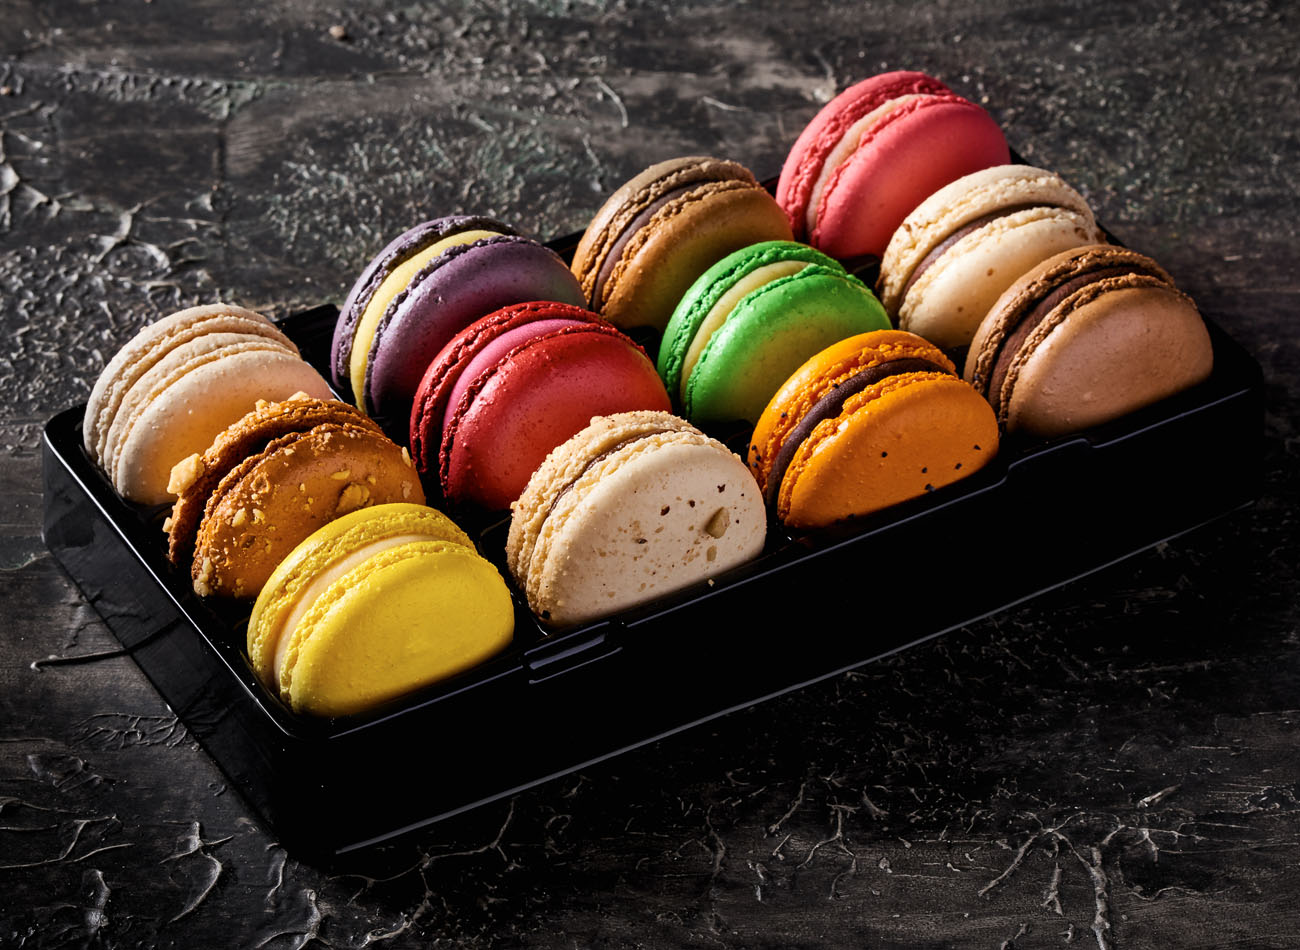 assorted-macarons.jpg